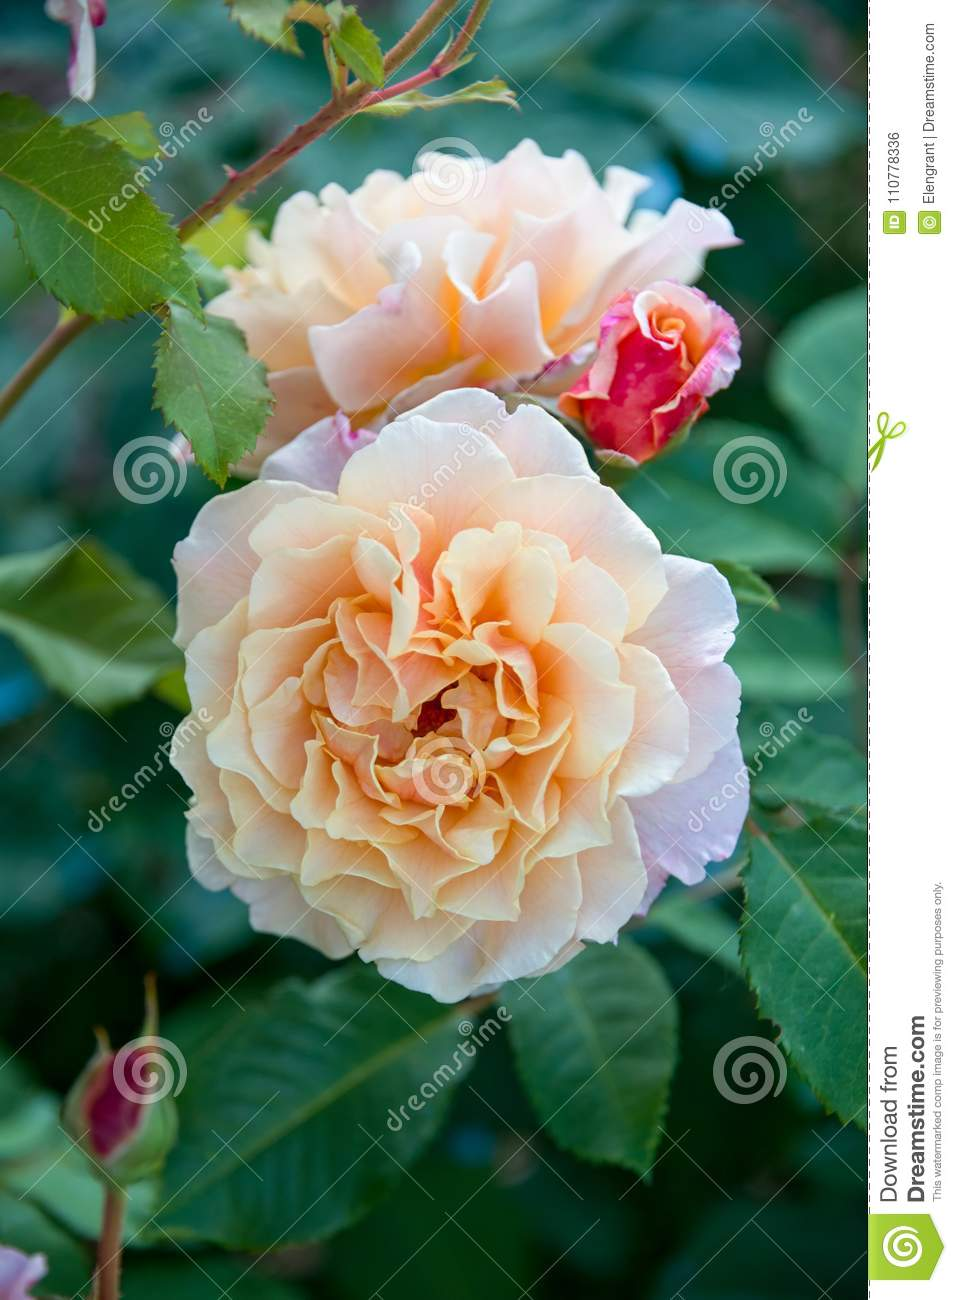 Fleur Rose D Orange Pale Avec Le Bourgeon Rouge Dans Le Jardin Photo